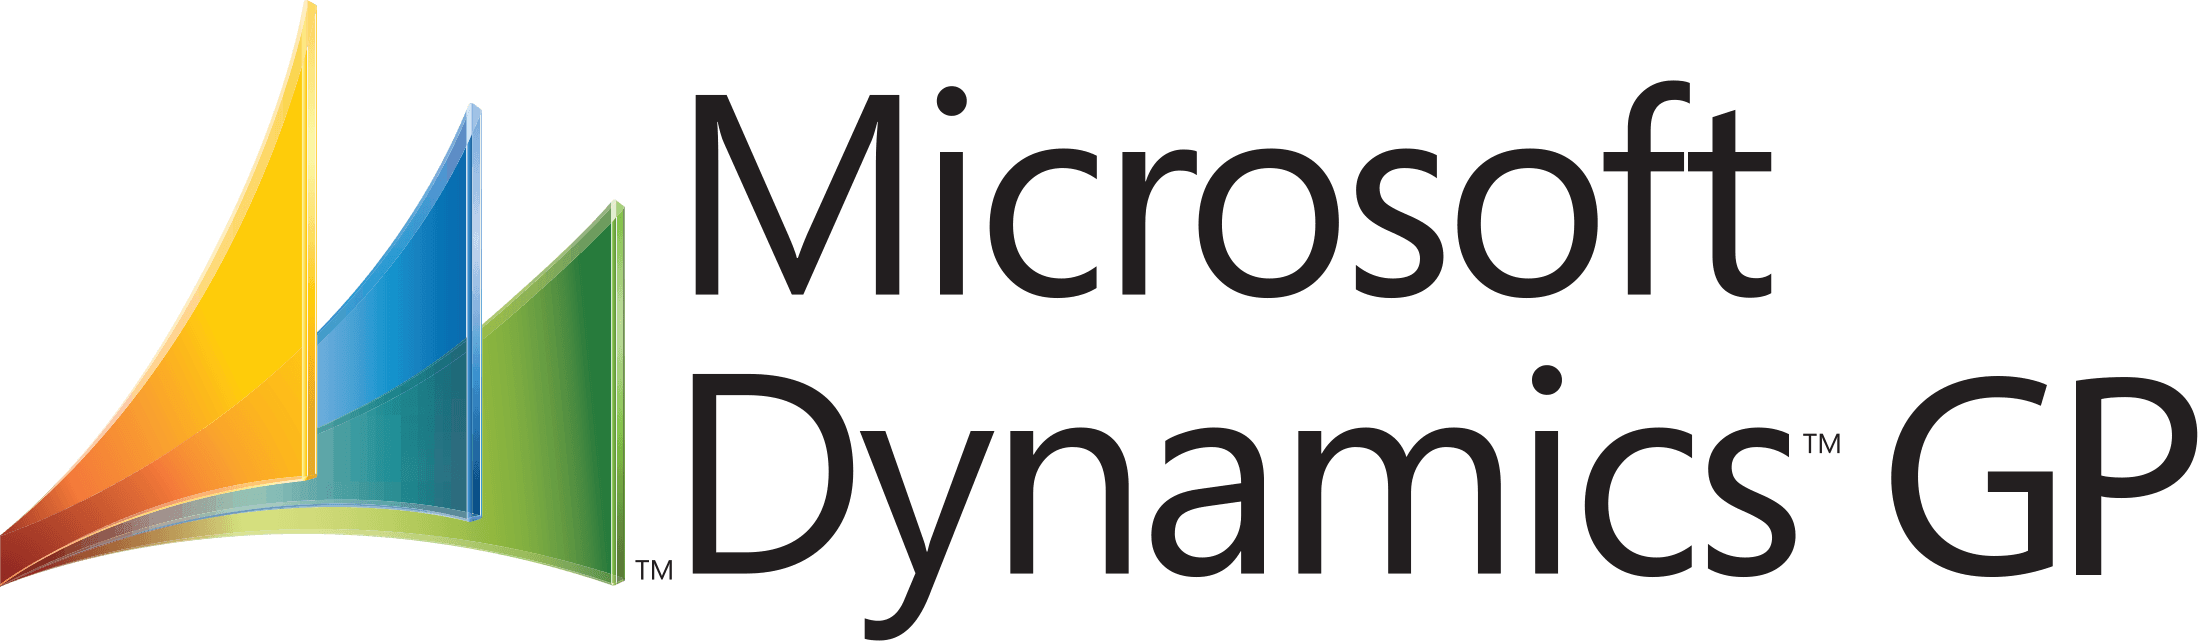 Mcirosoft Dynmaics - Great Plains